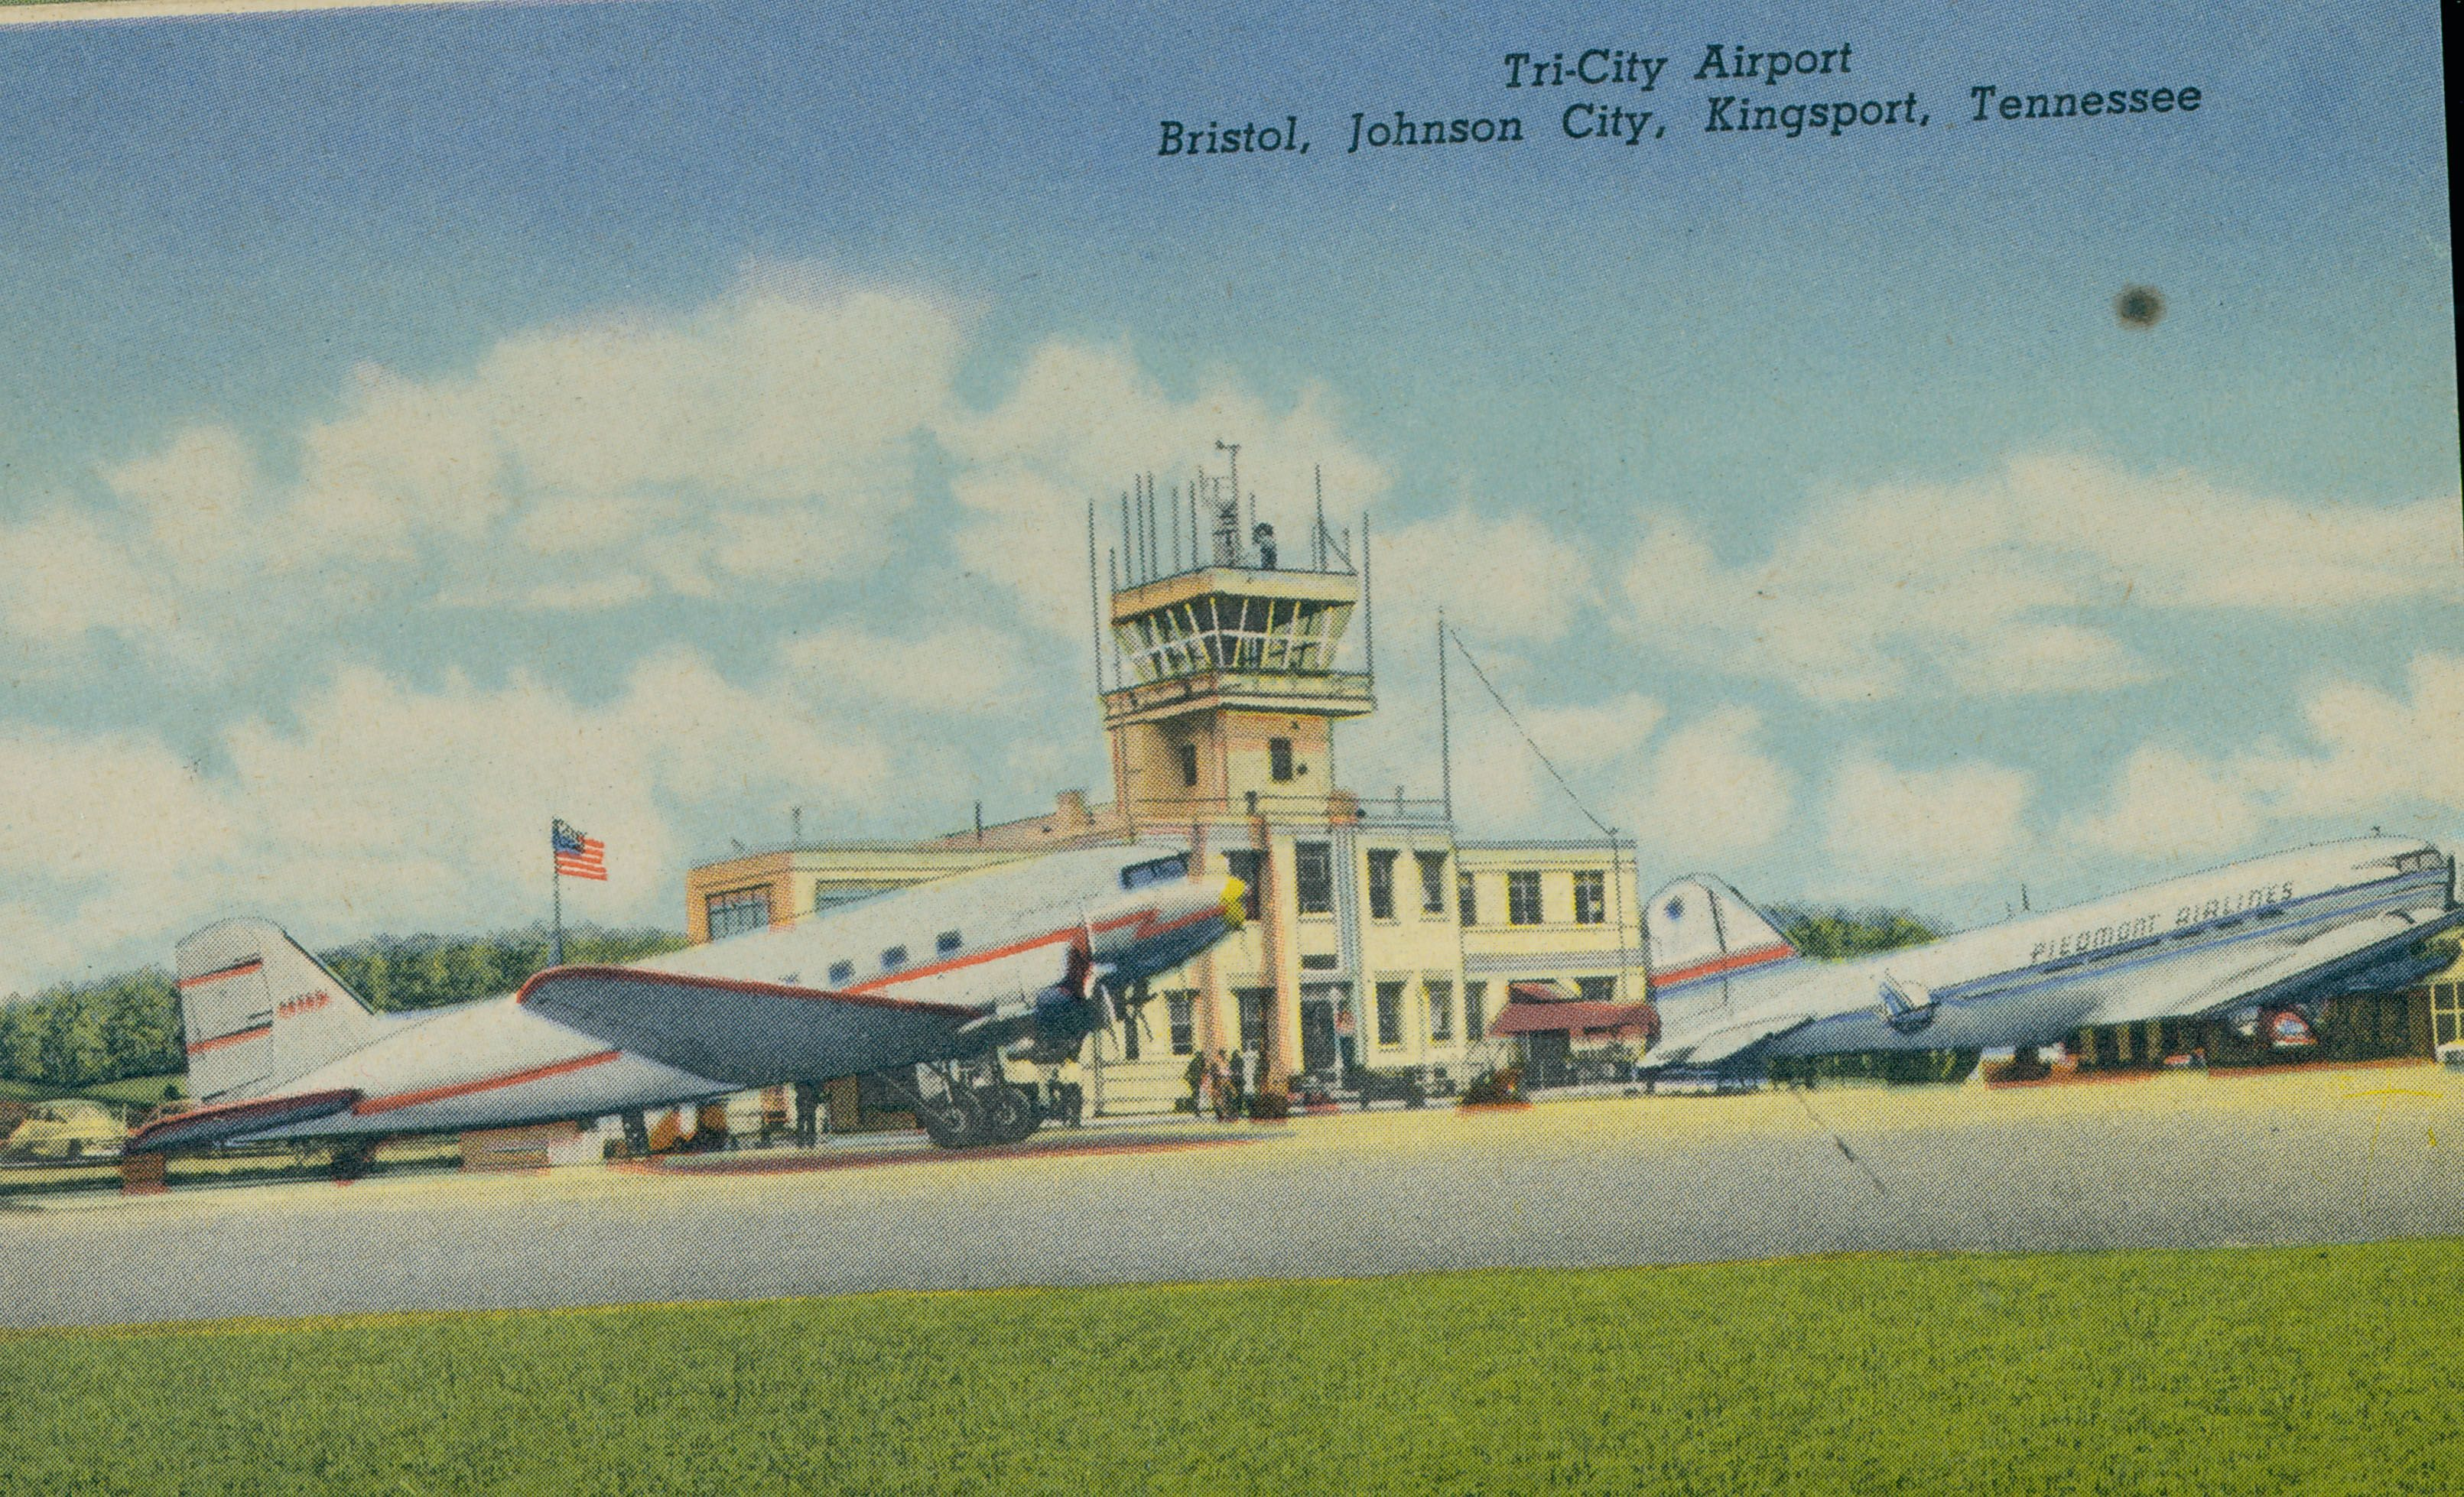 TriCity Airport East tennessee, Johnson city, Bristol tn